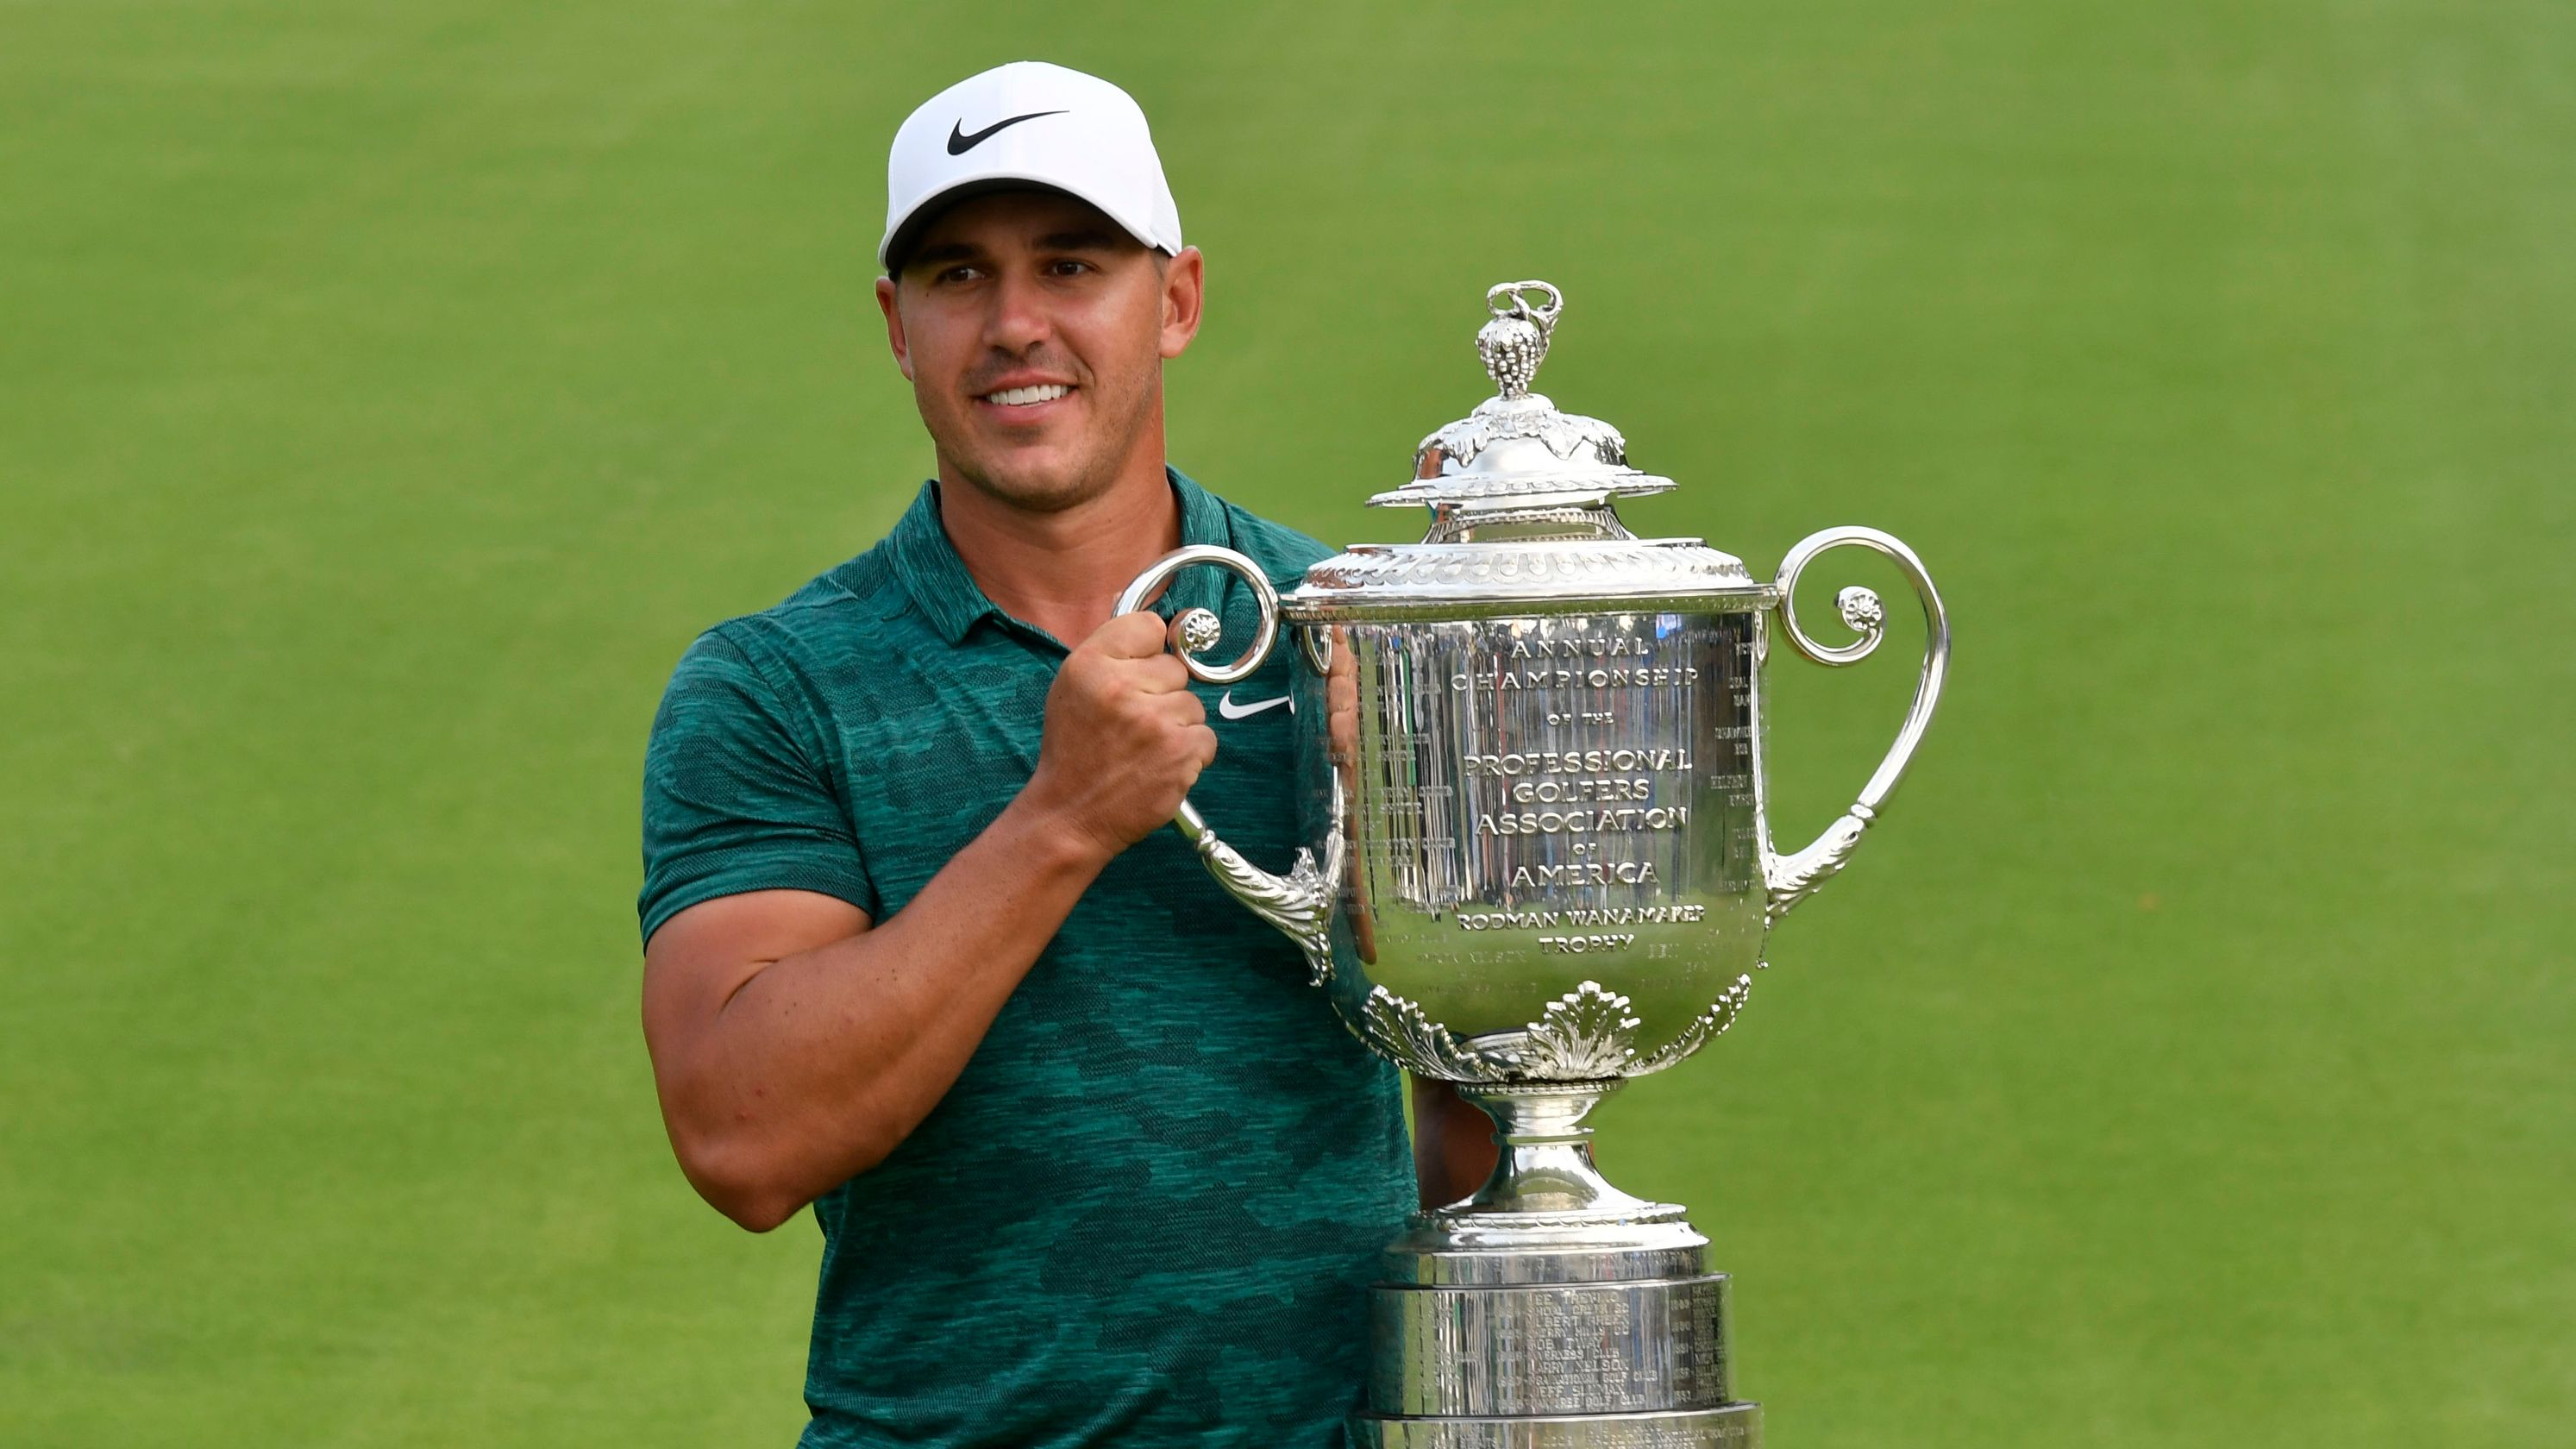 Brooks Koepka with the Wanamaker Trophy